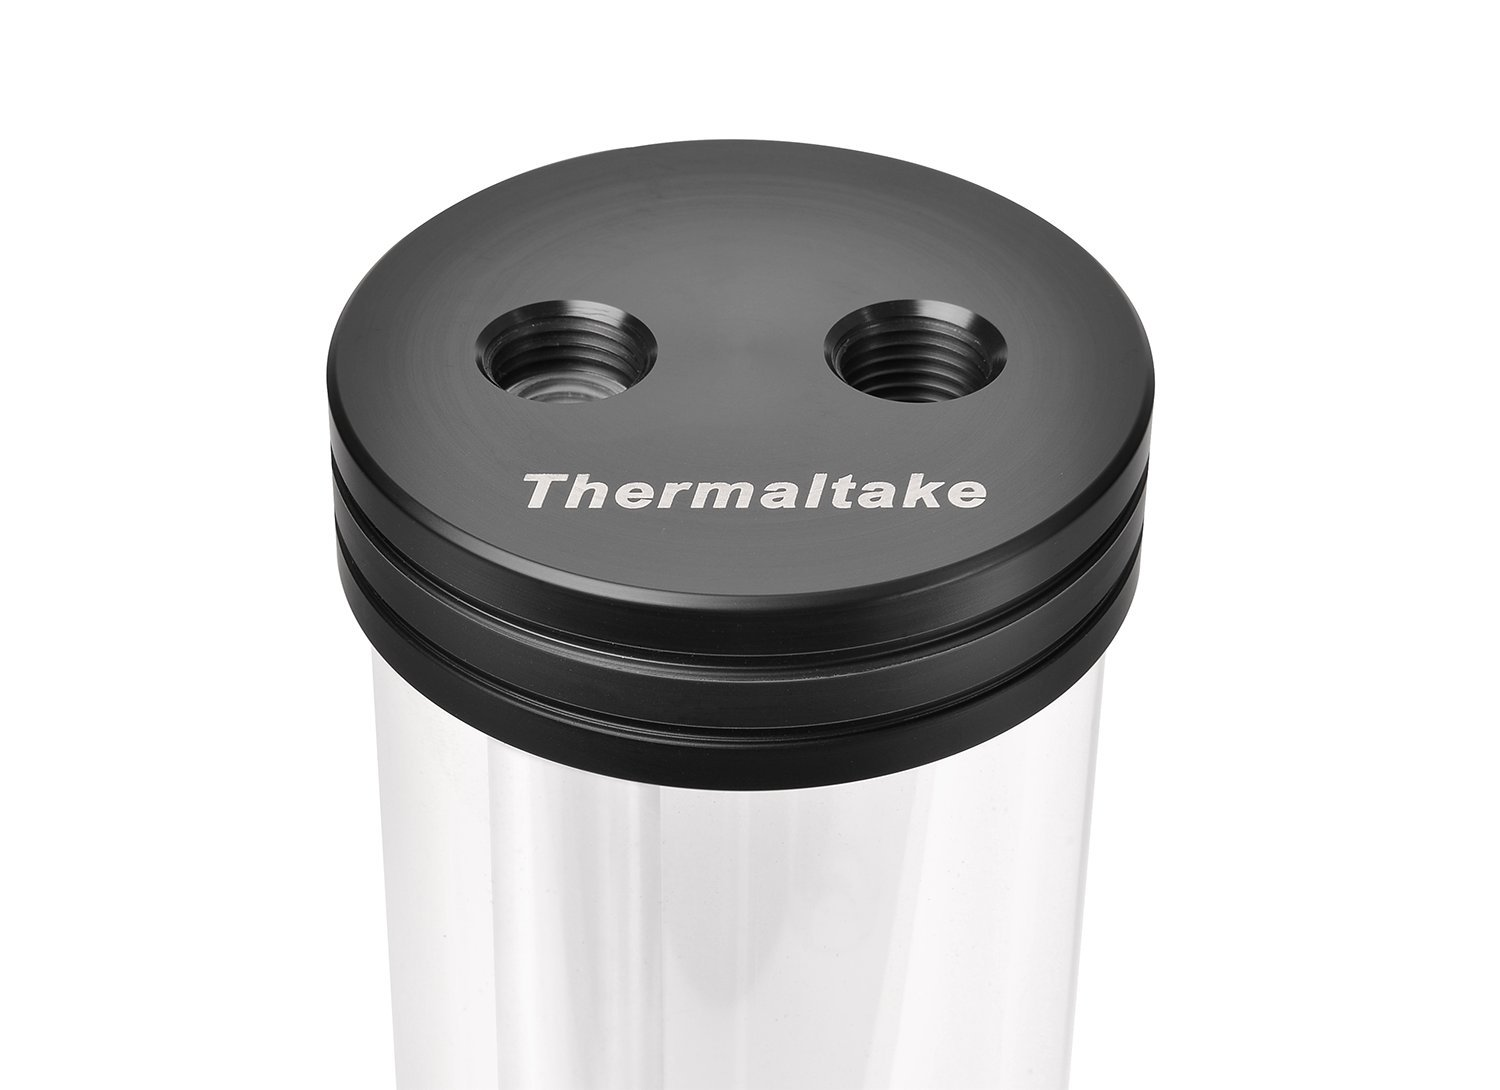 Thermaltake Pacific DIY LCS PR22-D5 w/Mod Kit 300ml 5-Speed Adjustable D5 Pump/Reservoir Combo 3-Port G 1/4'' Thread Tt LCS Certified POM PMMA CL-W083-PL00BL-A by Thermaltake (Image #6)